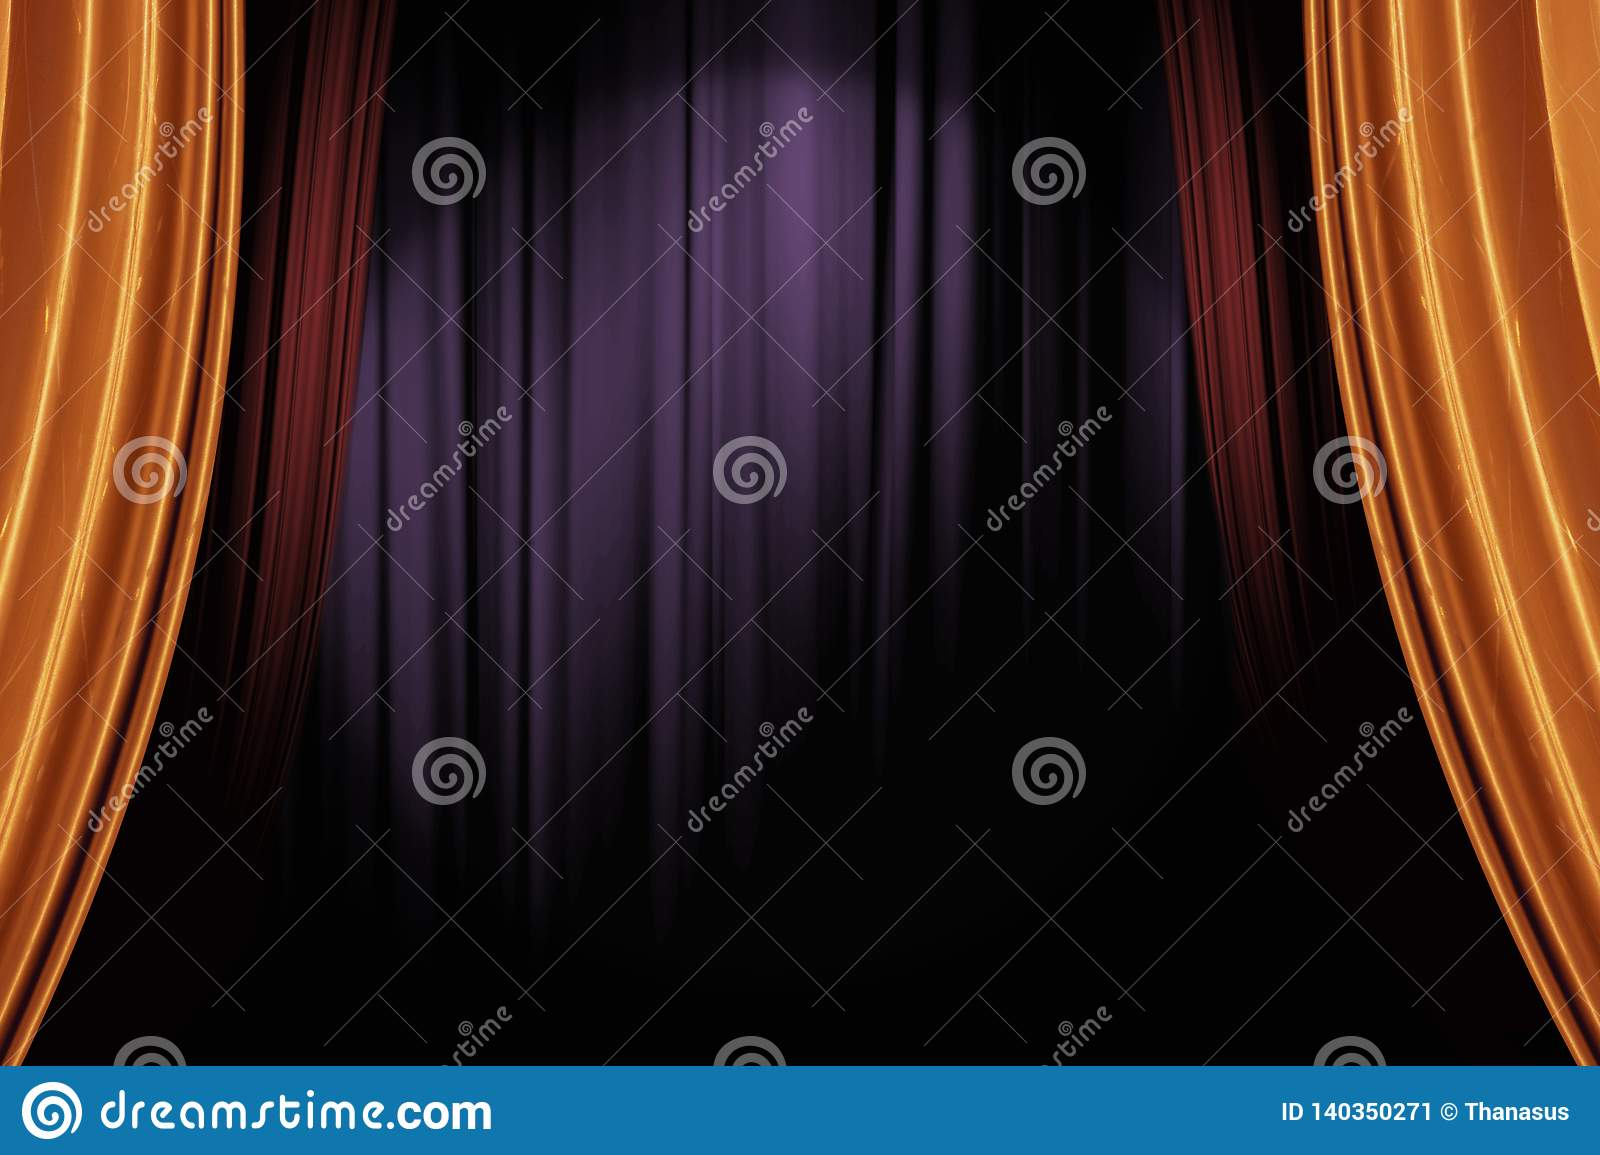 Gold and red stage curtains in dark theater for a live performance background